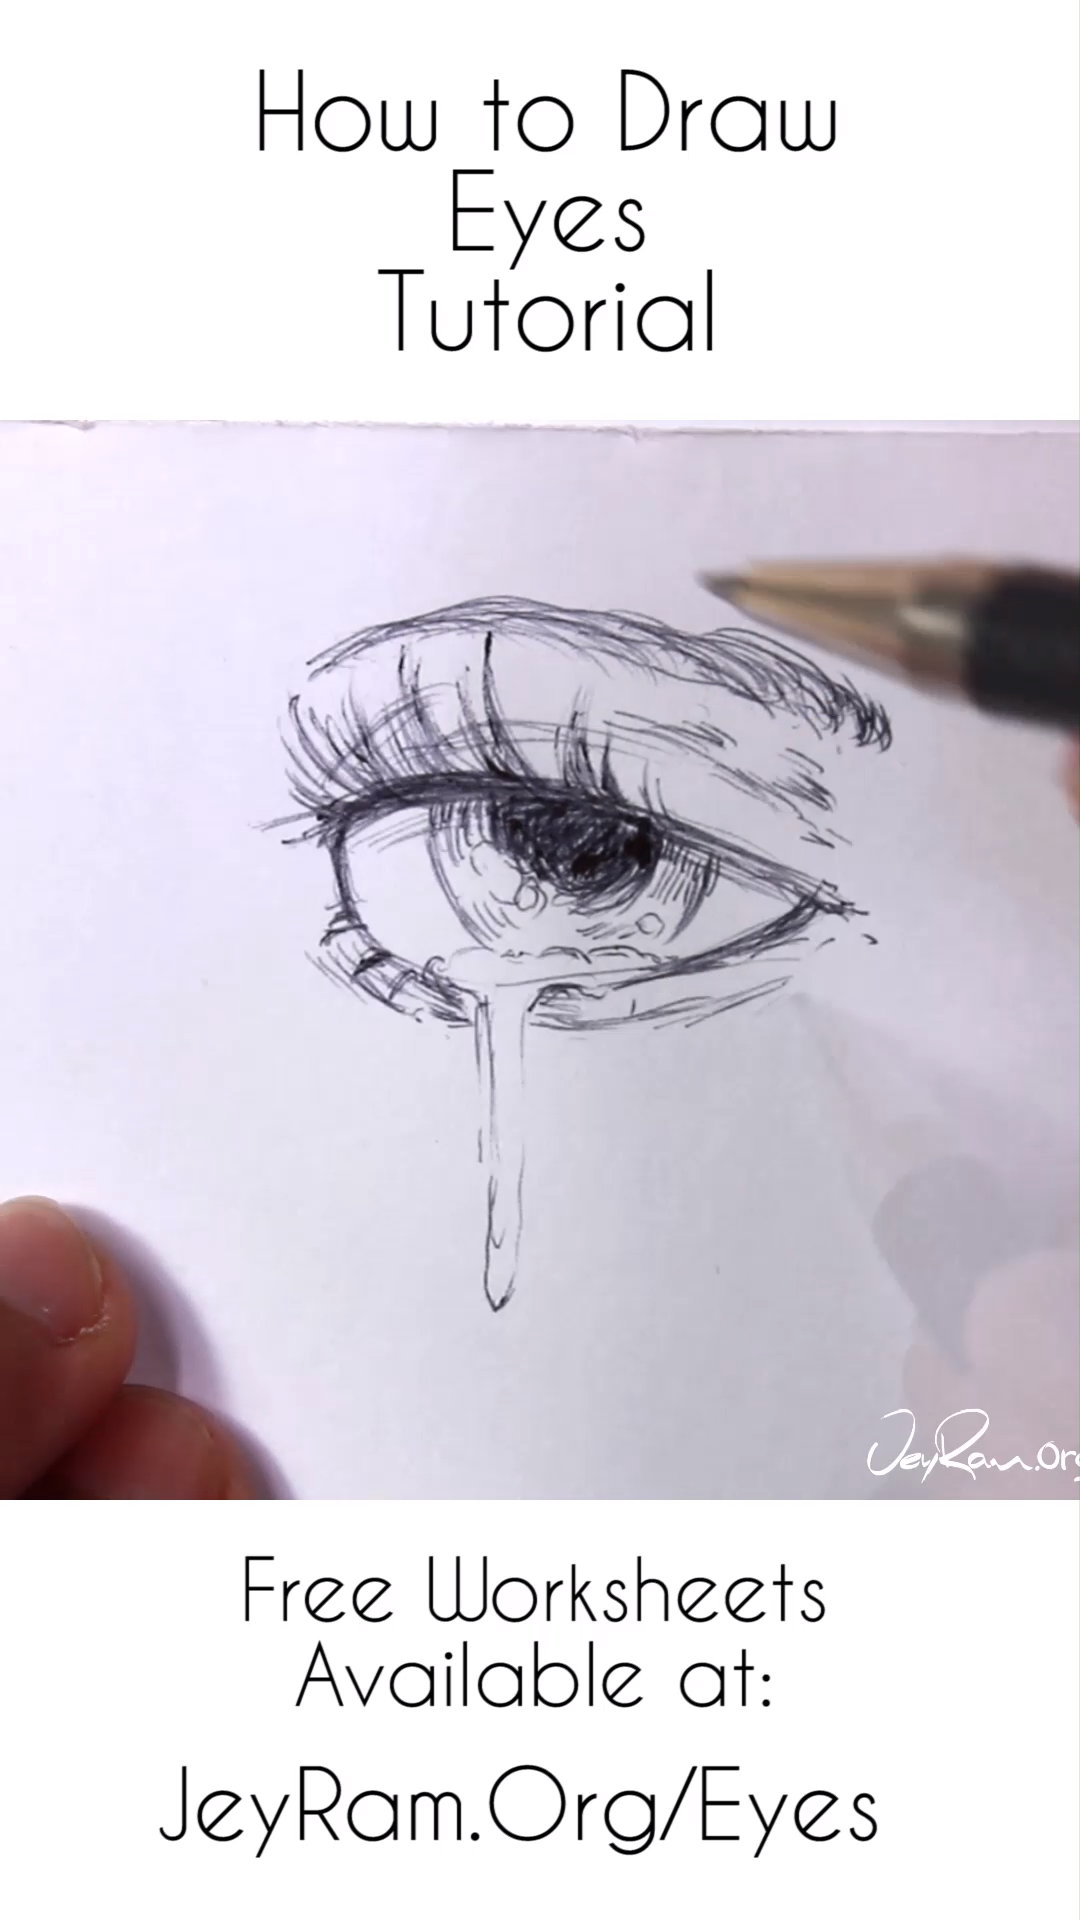 How to Draw Eyes Step by Step for Beginners Free Printable PDF Learn how to draw the eyes using this step by step process made for beginners Grab the free worksheets on t...